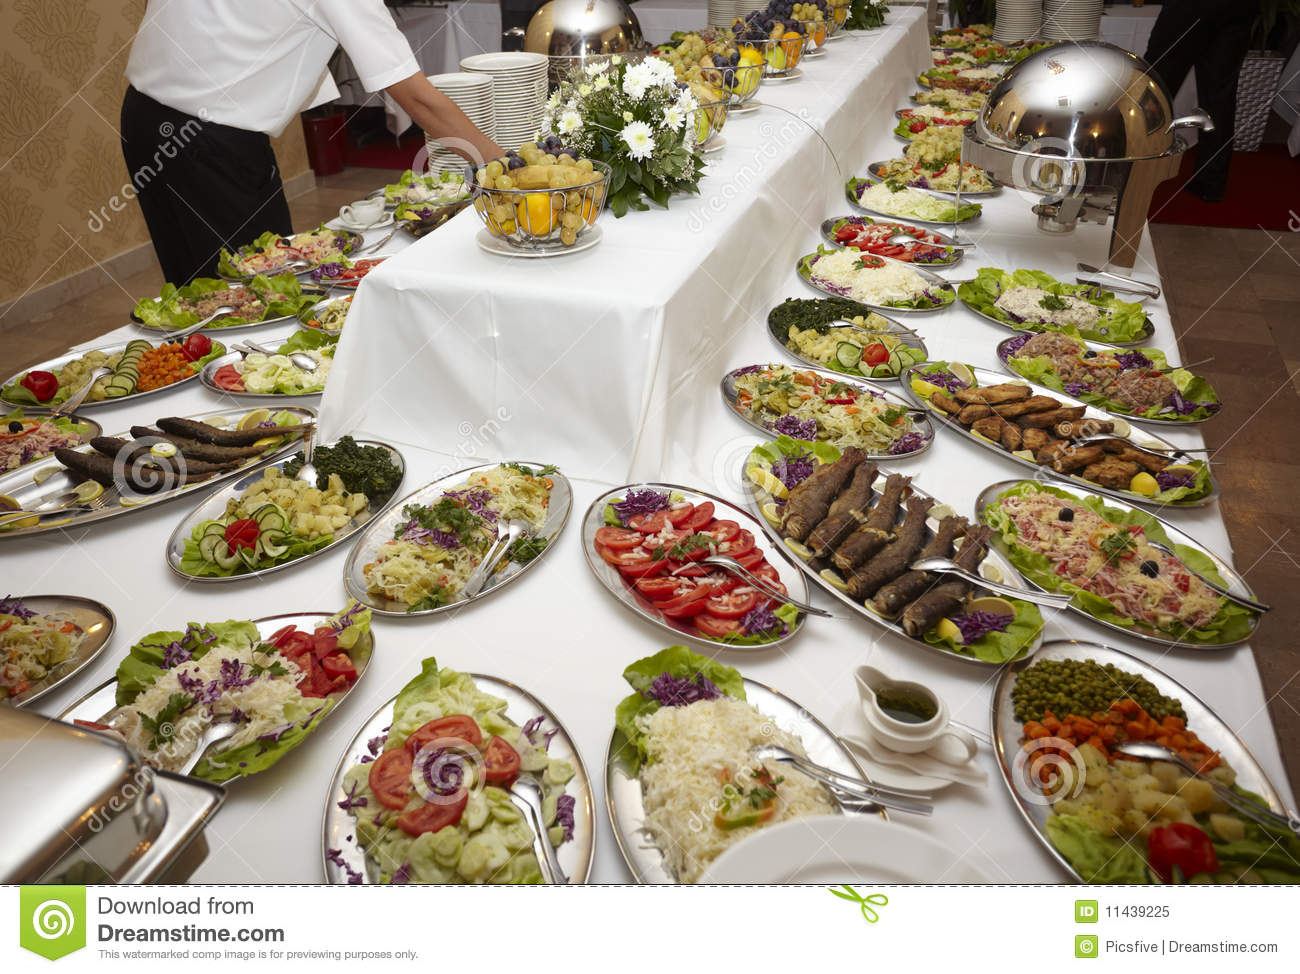 Catering food restaurant cuisine royalty free stock photo for Buffet cuisine